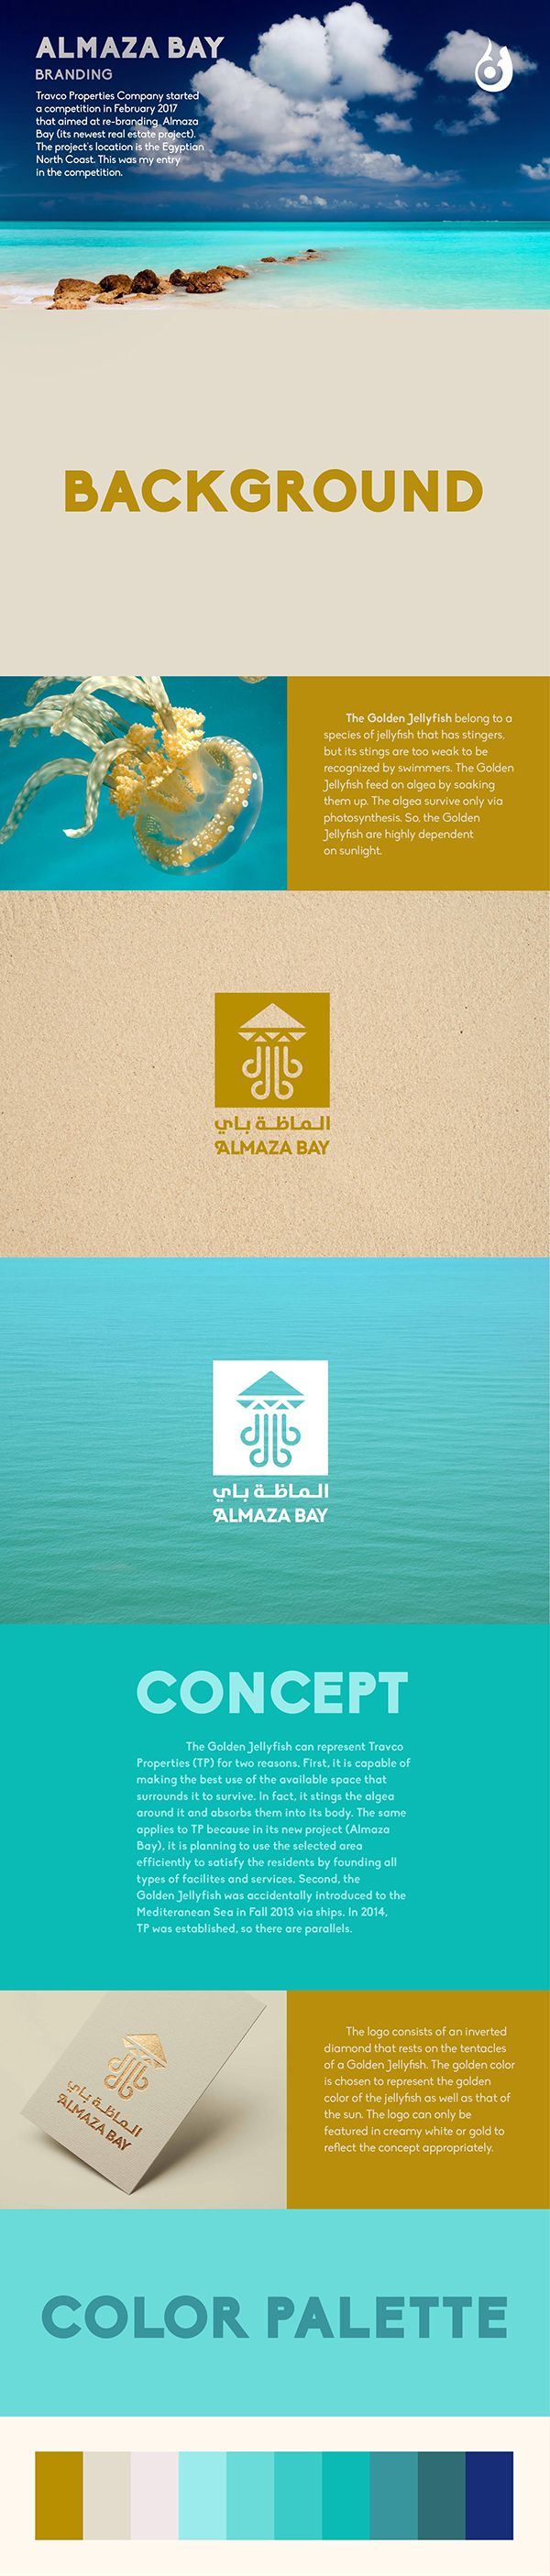 Re-Branding Almaza Bay (Option 1) on Behance #Branding #CorporateIdentity #VisualIdentity #GraphicDesign #LogoDesign #BusinessCards #Letterhead #Envelop #Concept #Creative #Modern #Diamond #Almaza #Egypt #Tourism #RealEstate #EgyptianNorthCoast #Beach #Jellyfish #Namatakom #نمطكم #ArabGraphicDesign #Arab